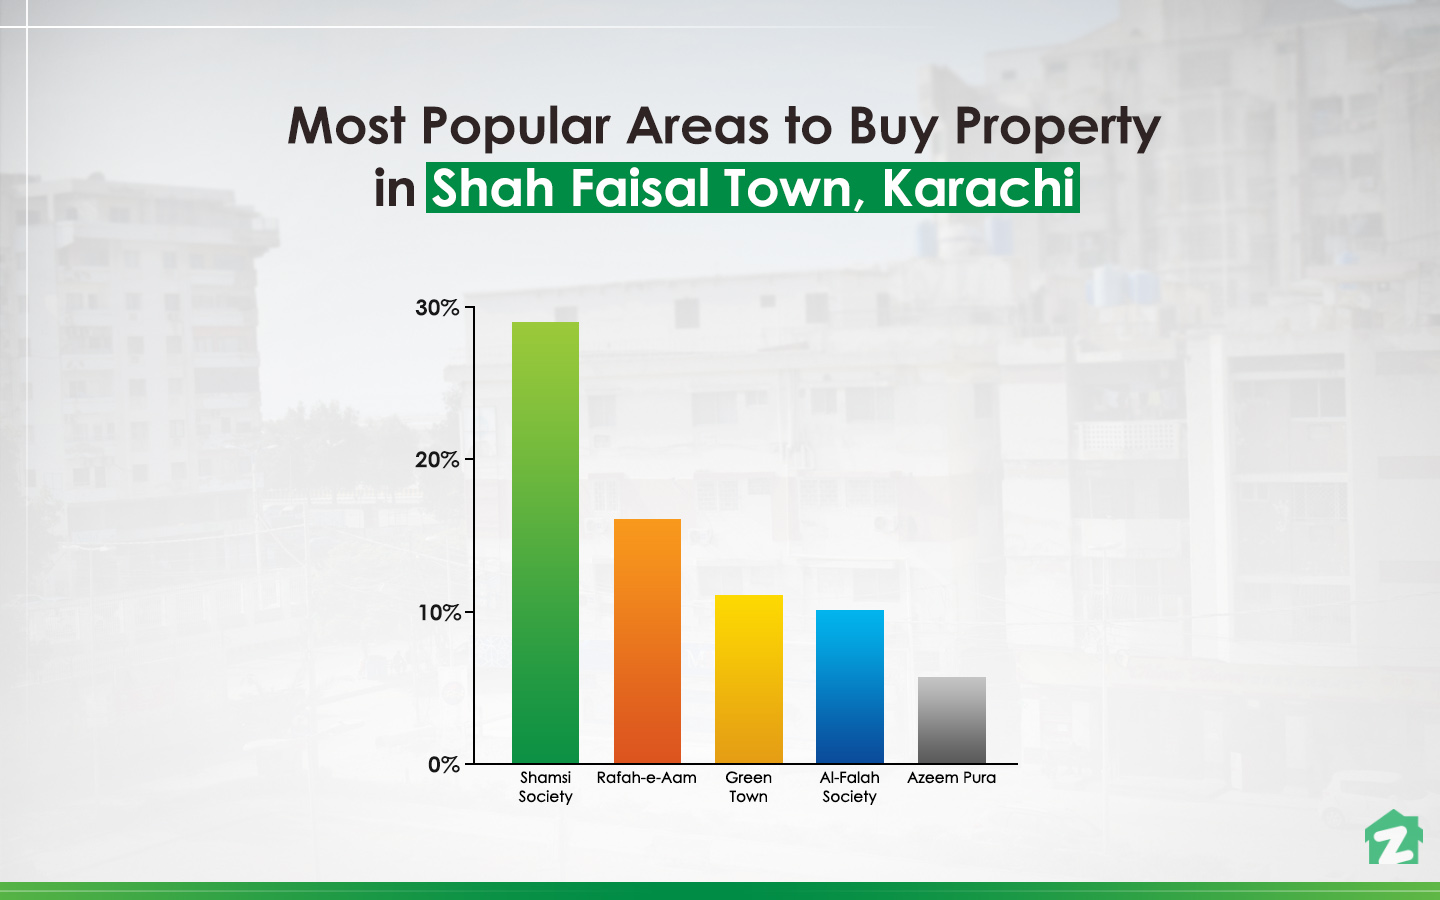 Popular areas among buyers in Shah Faisal Town